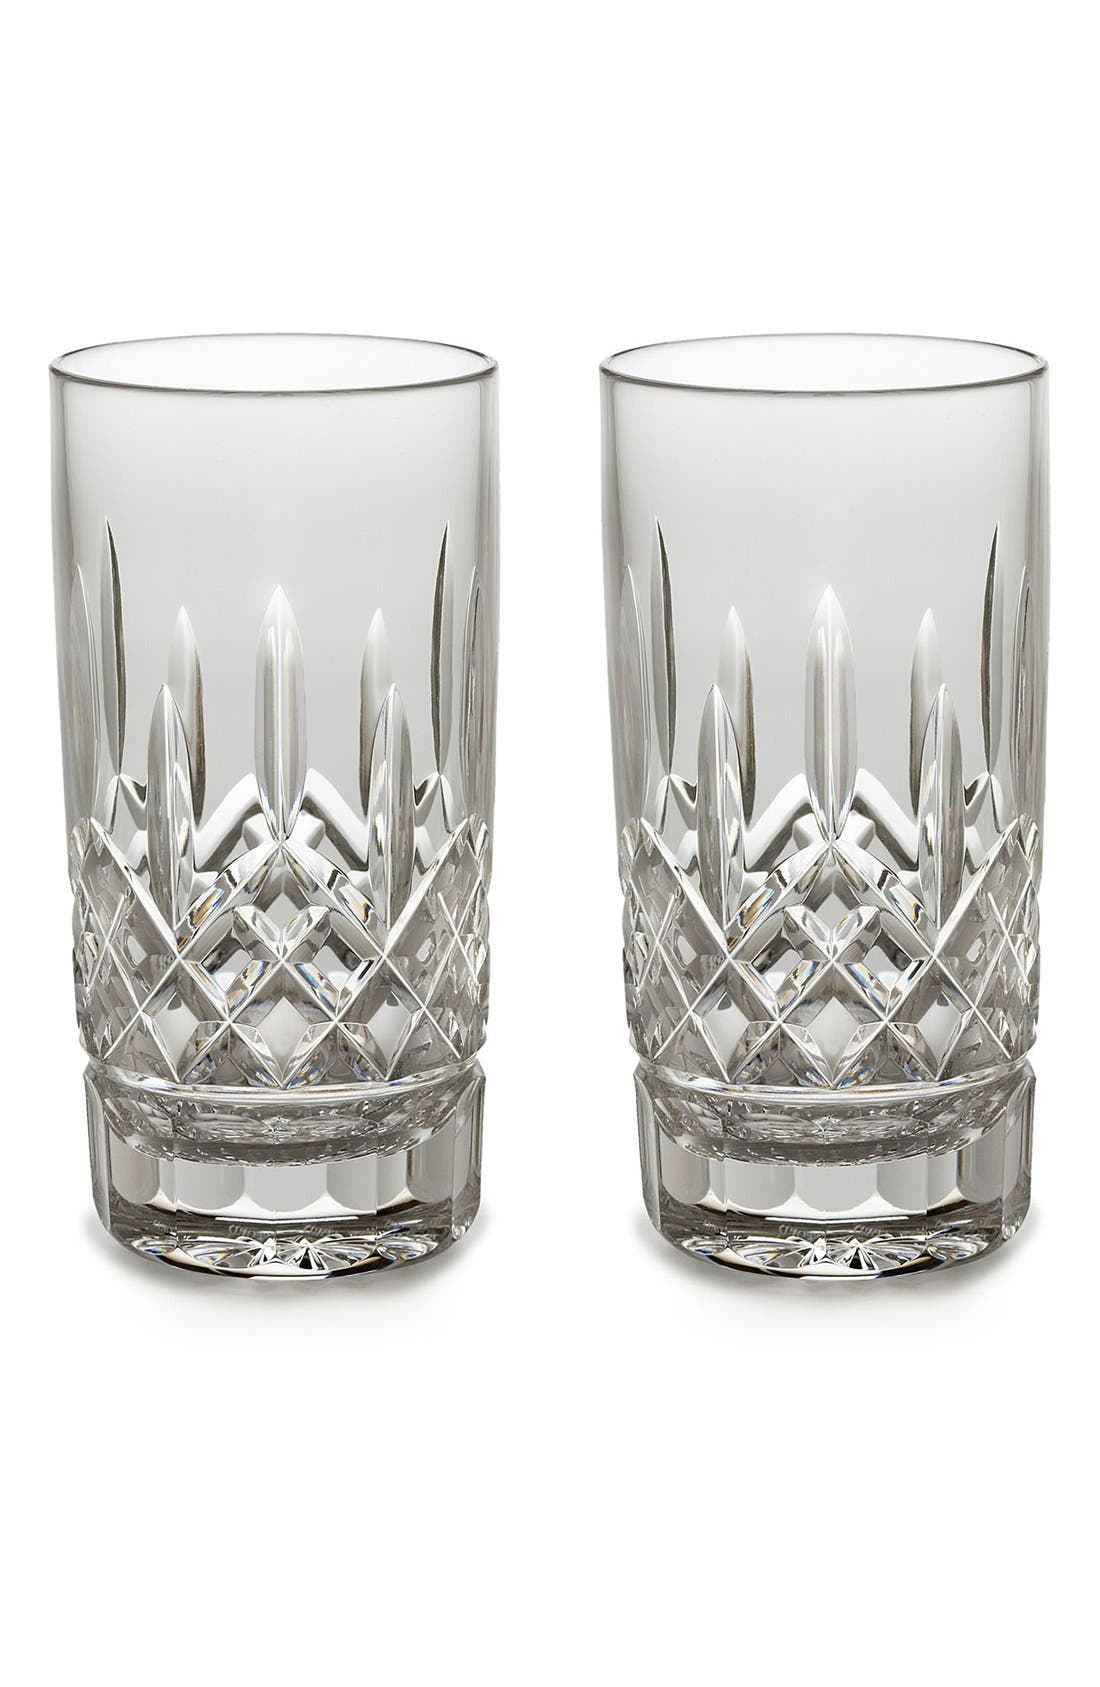 Main Image - Waterford 'Lismore' Lead Crystal Highball Glasses (Set of 2)